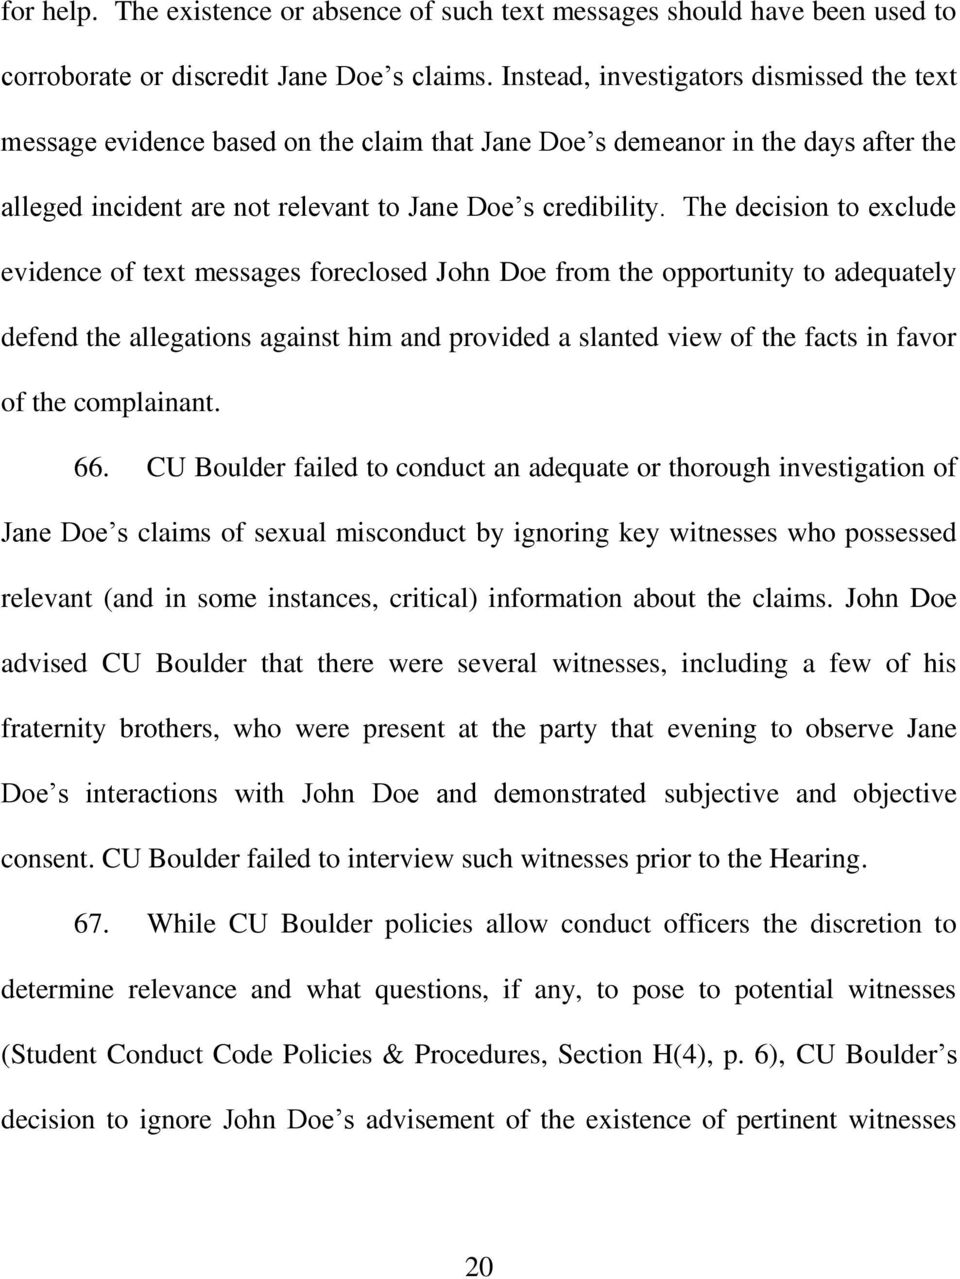 The decision to exclude evidence of text messages foreclosed John Doe from the opportunity to adequately defend the allegations against him and provided a slanted view of the facts in favor of the